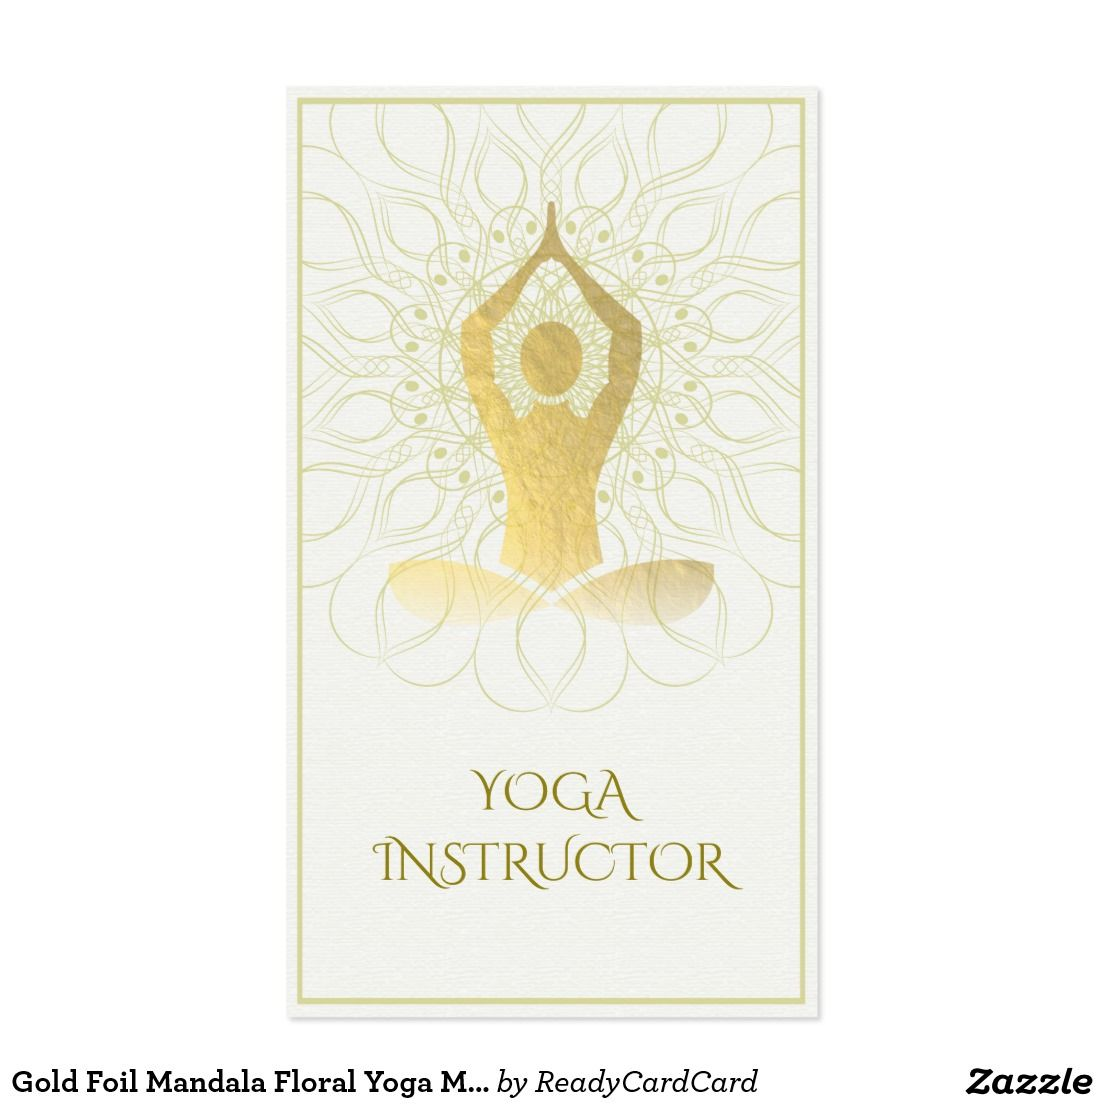 Gold Foil Mandala Floral Yoga Meditation Om Symbol Business Card ...